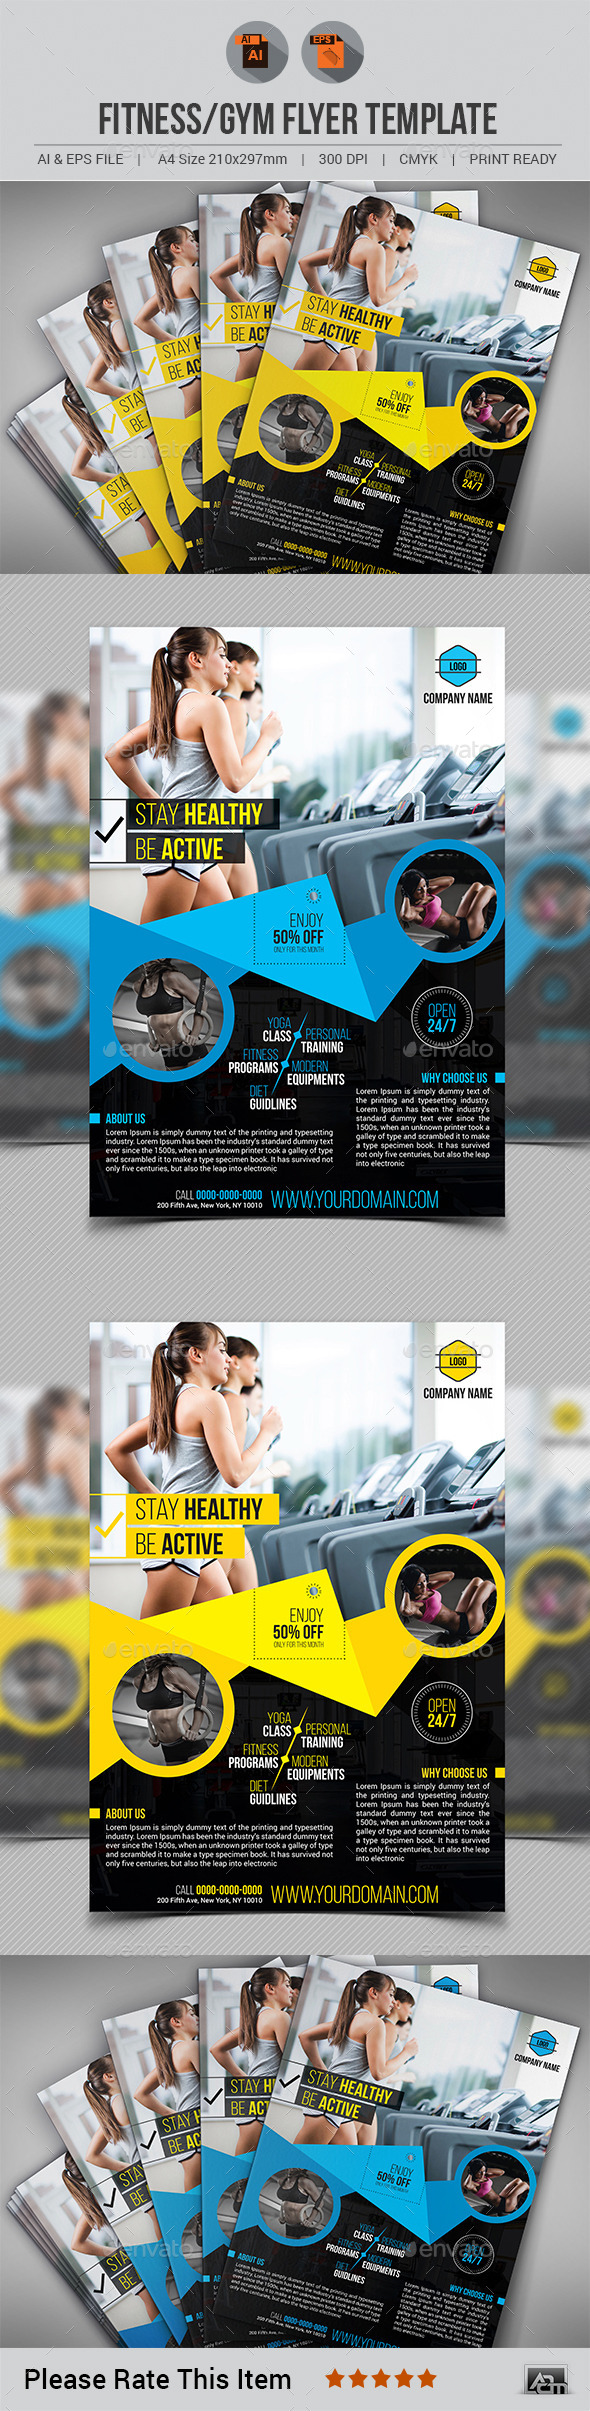 Fitness/Gym Flyer Template V10